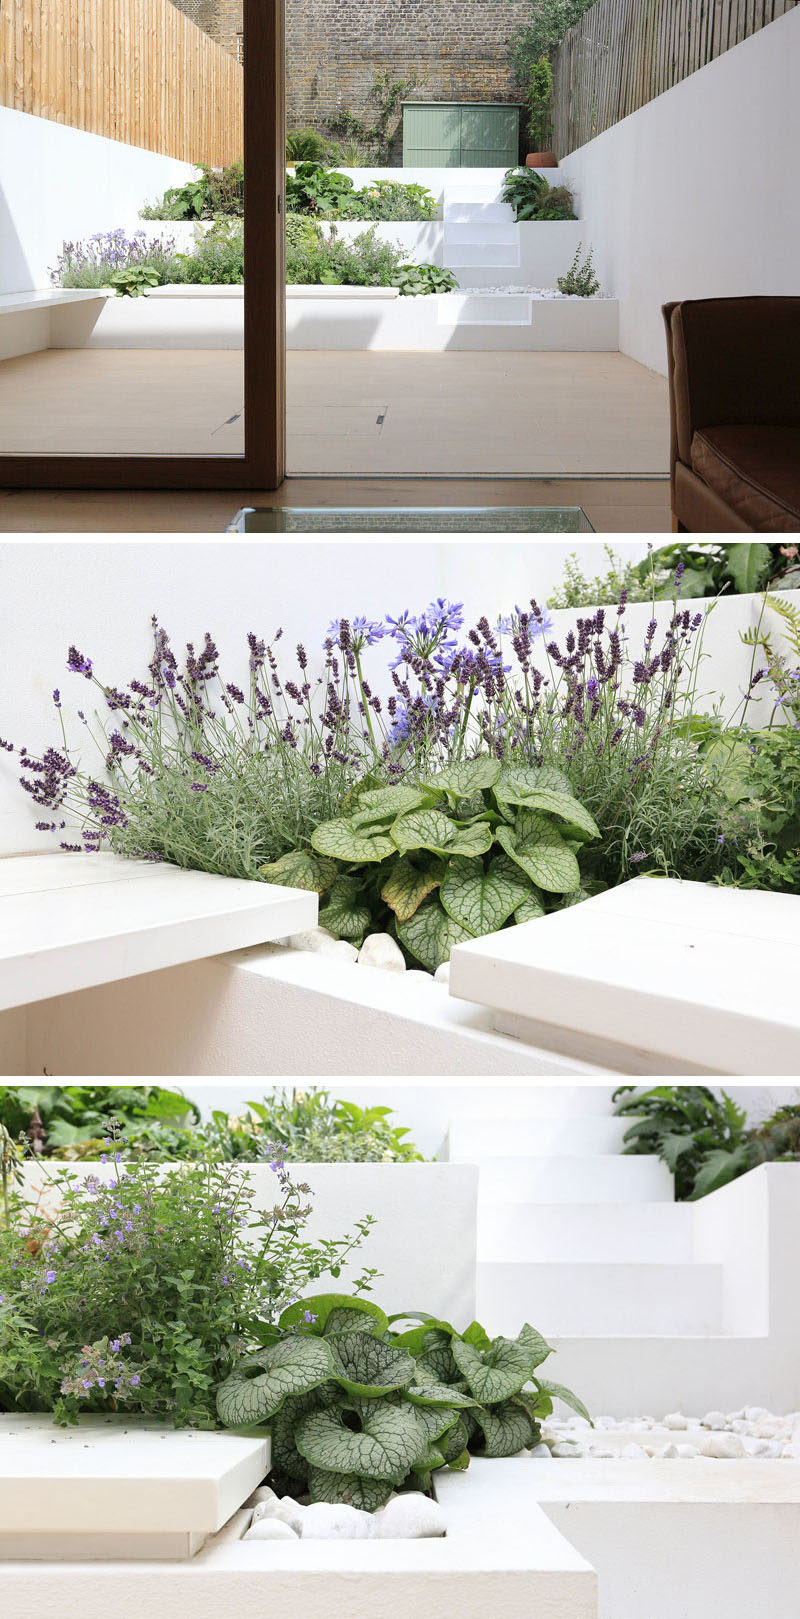 New terraced planters were installed to create a modern looking outdoor entertaining area for this home. Steps were also included in the design of the terrace to provide access to the top of the garden.